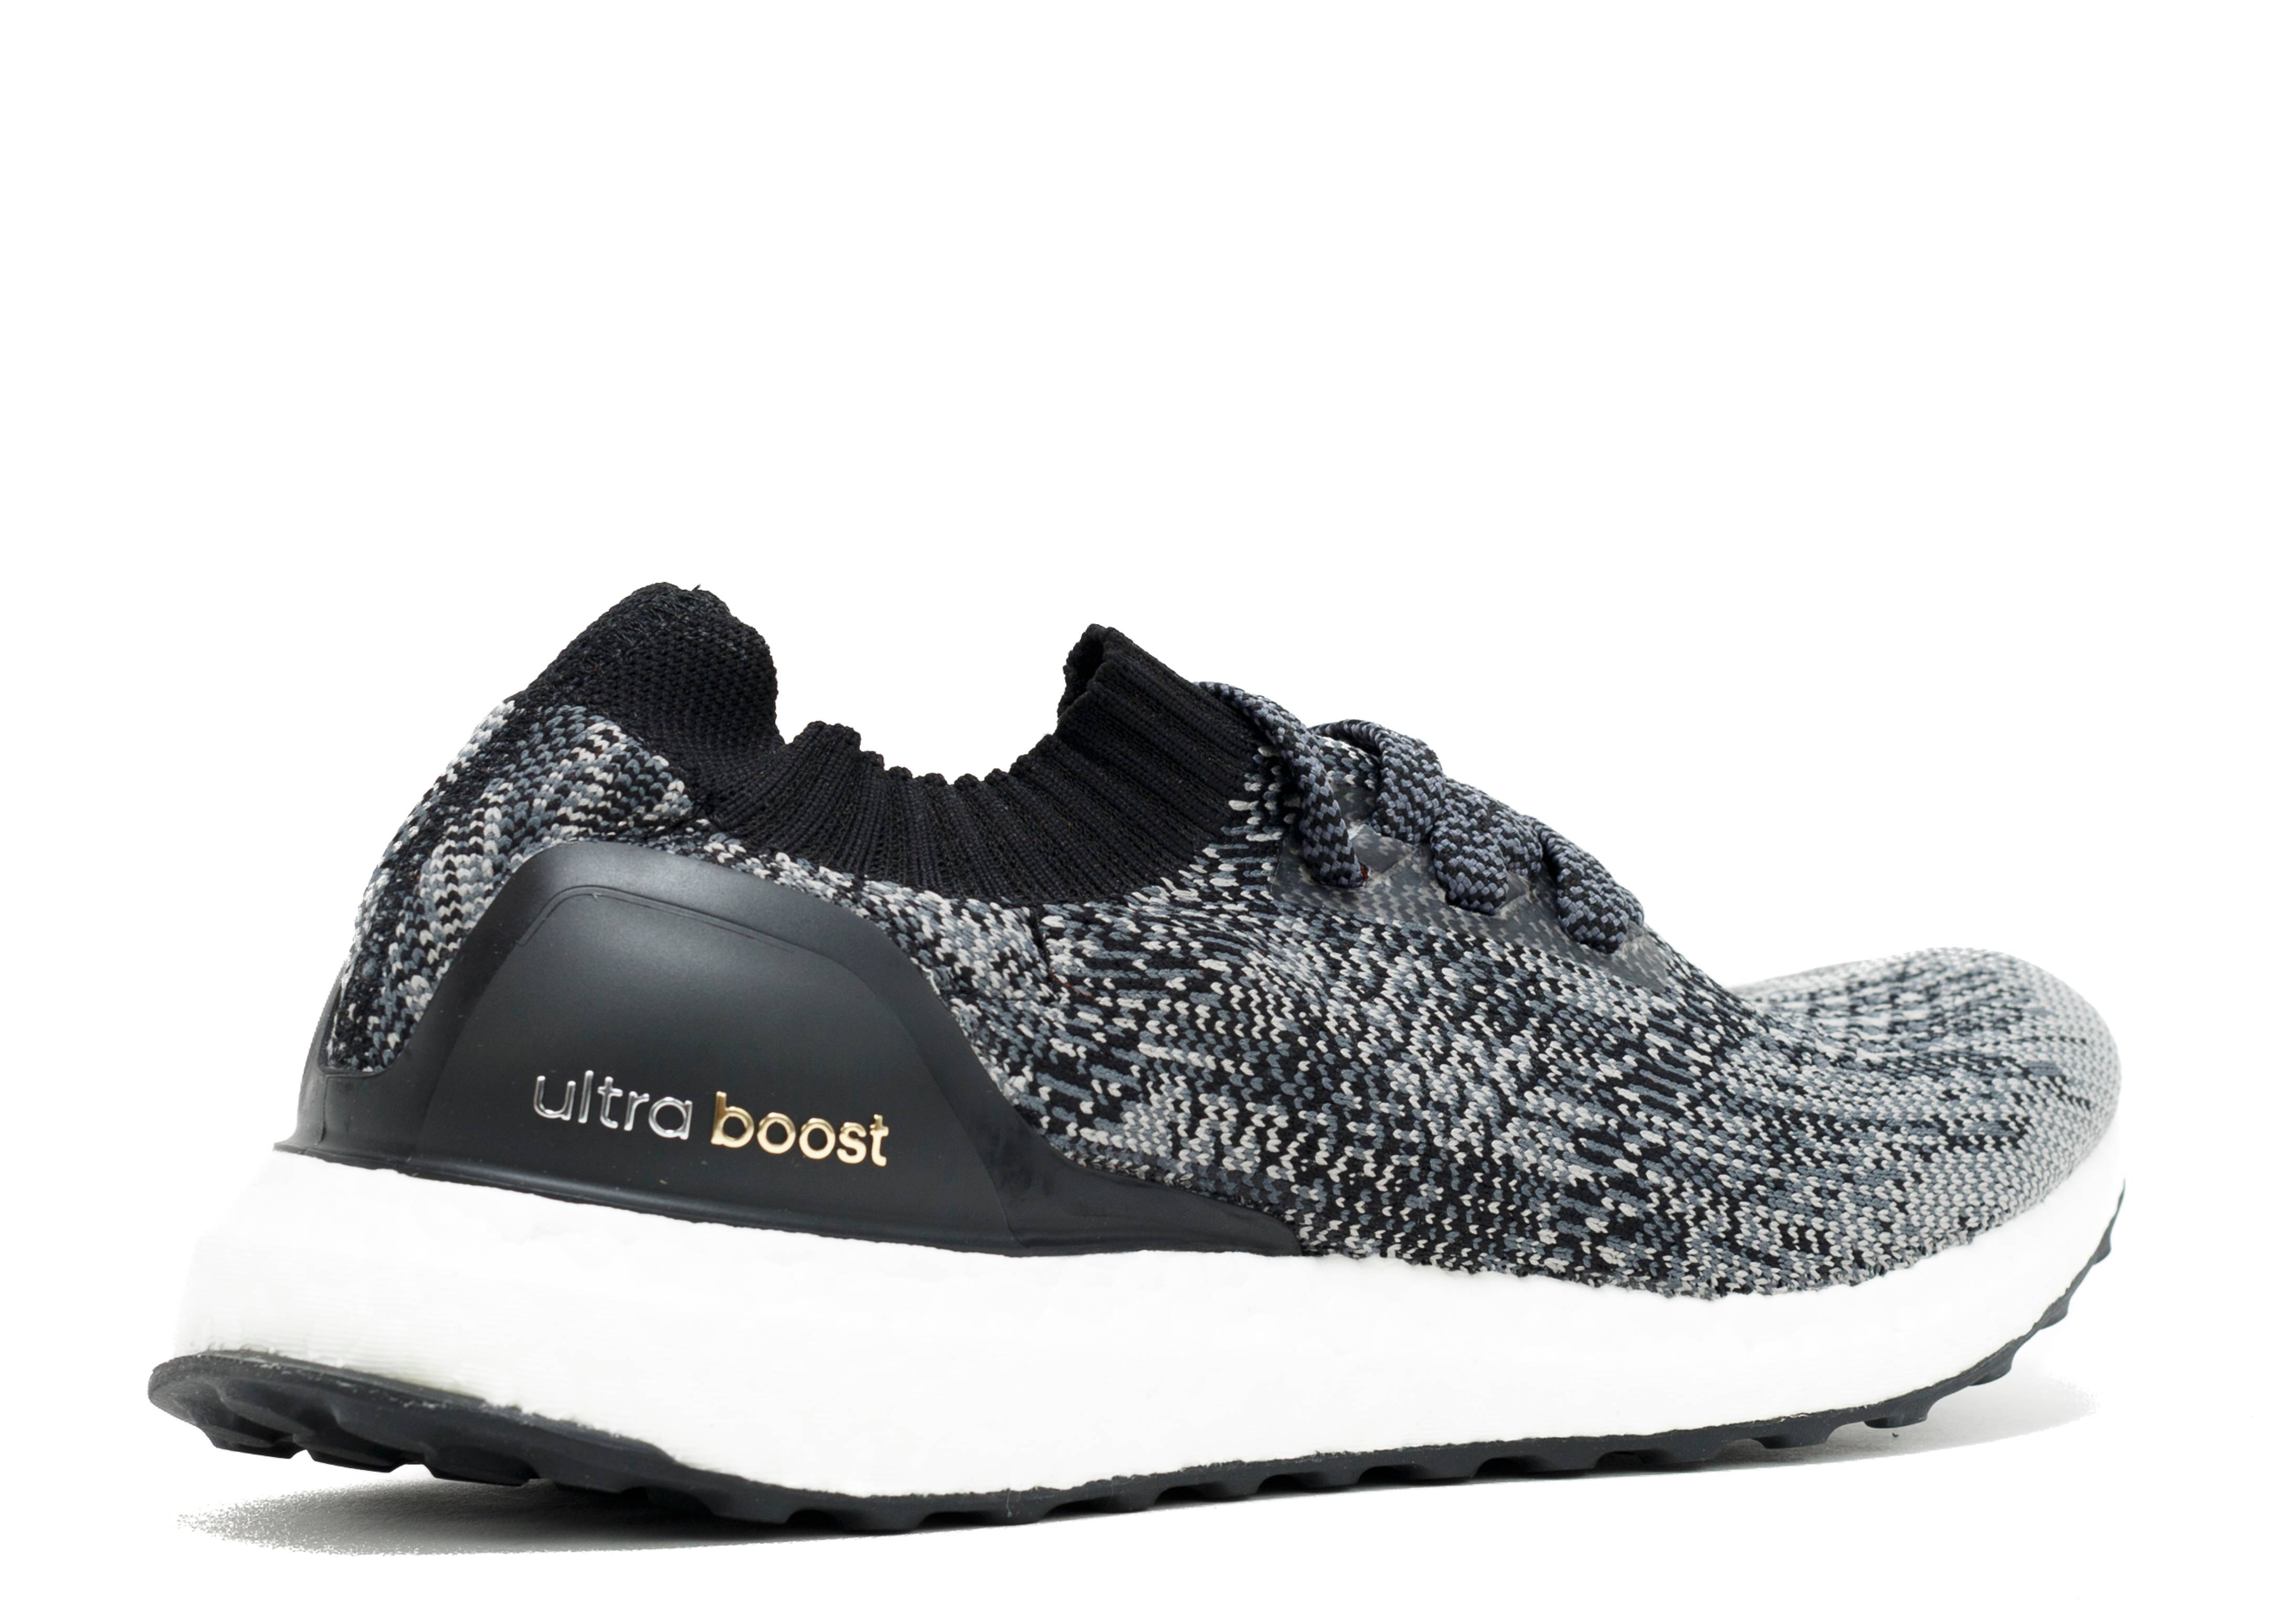 d6c19e0b1 Ultra Boost Uncaged M - Adidas - bb3900 - core black gold